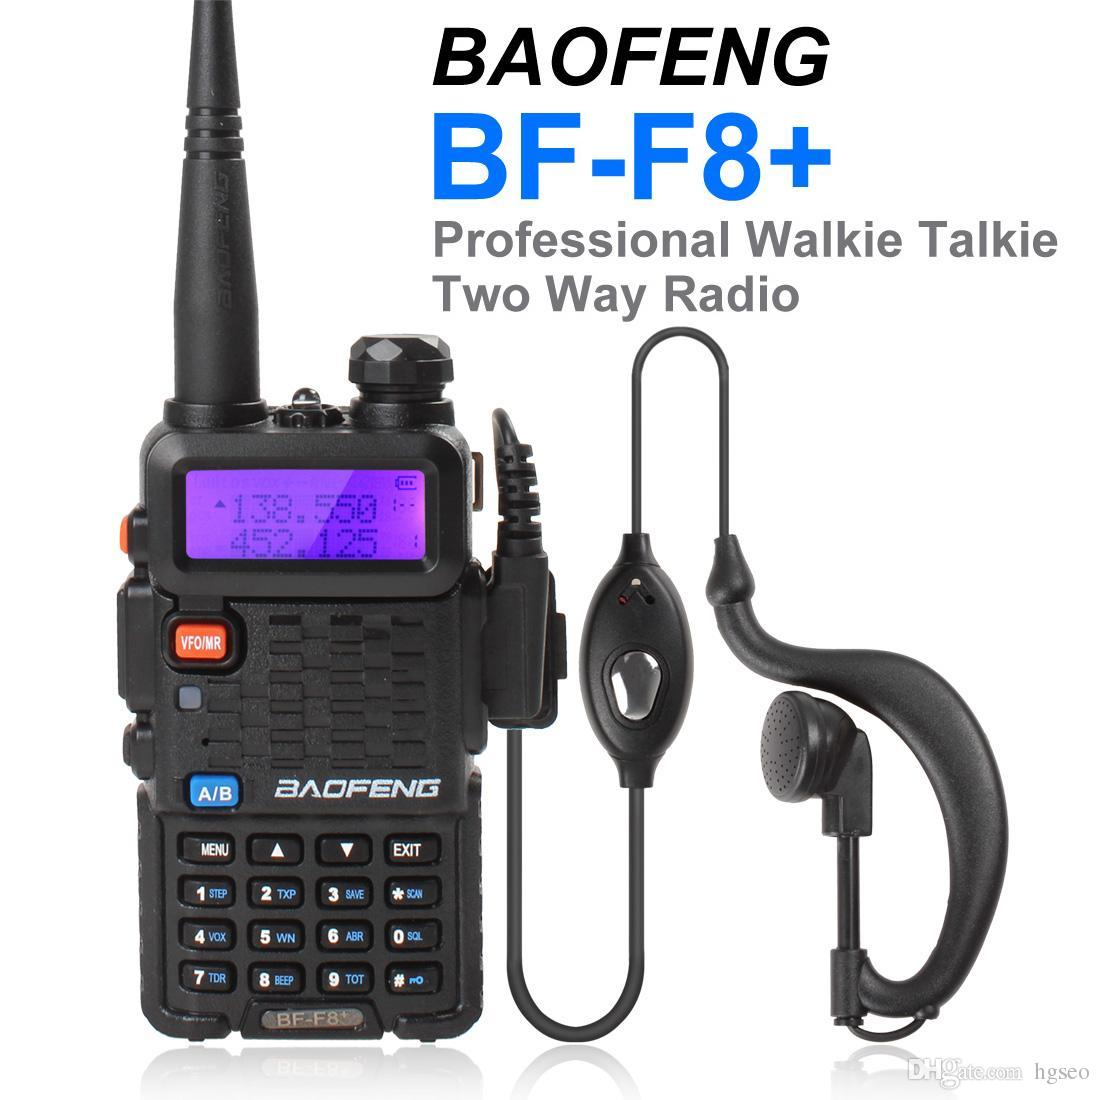 bf f8 porable baofeng dual band walkie talkie ham two way radio with emergency alarm scanning. Black Bedroom Furniture Sets. Home Design Ideas